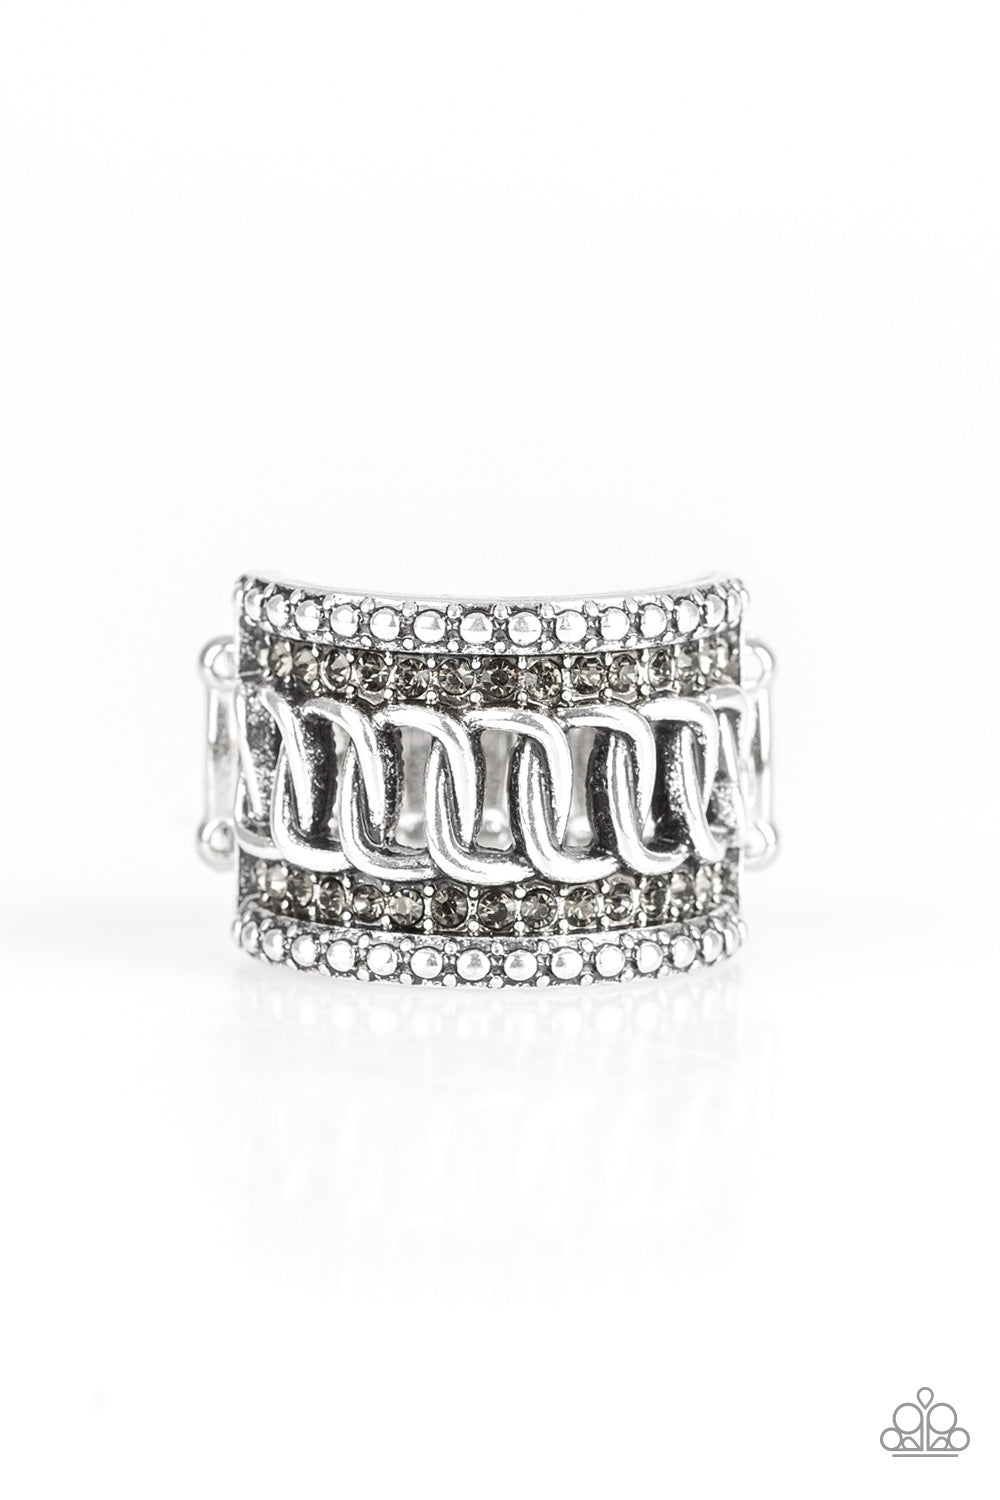 Paparazzi Accessories - Out For The Count - Silver Ring - JMJ Jewelry Collection